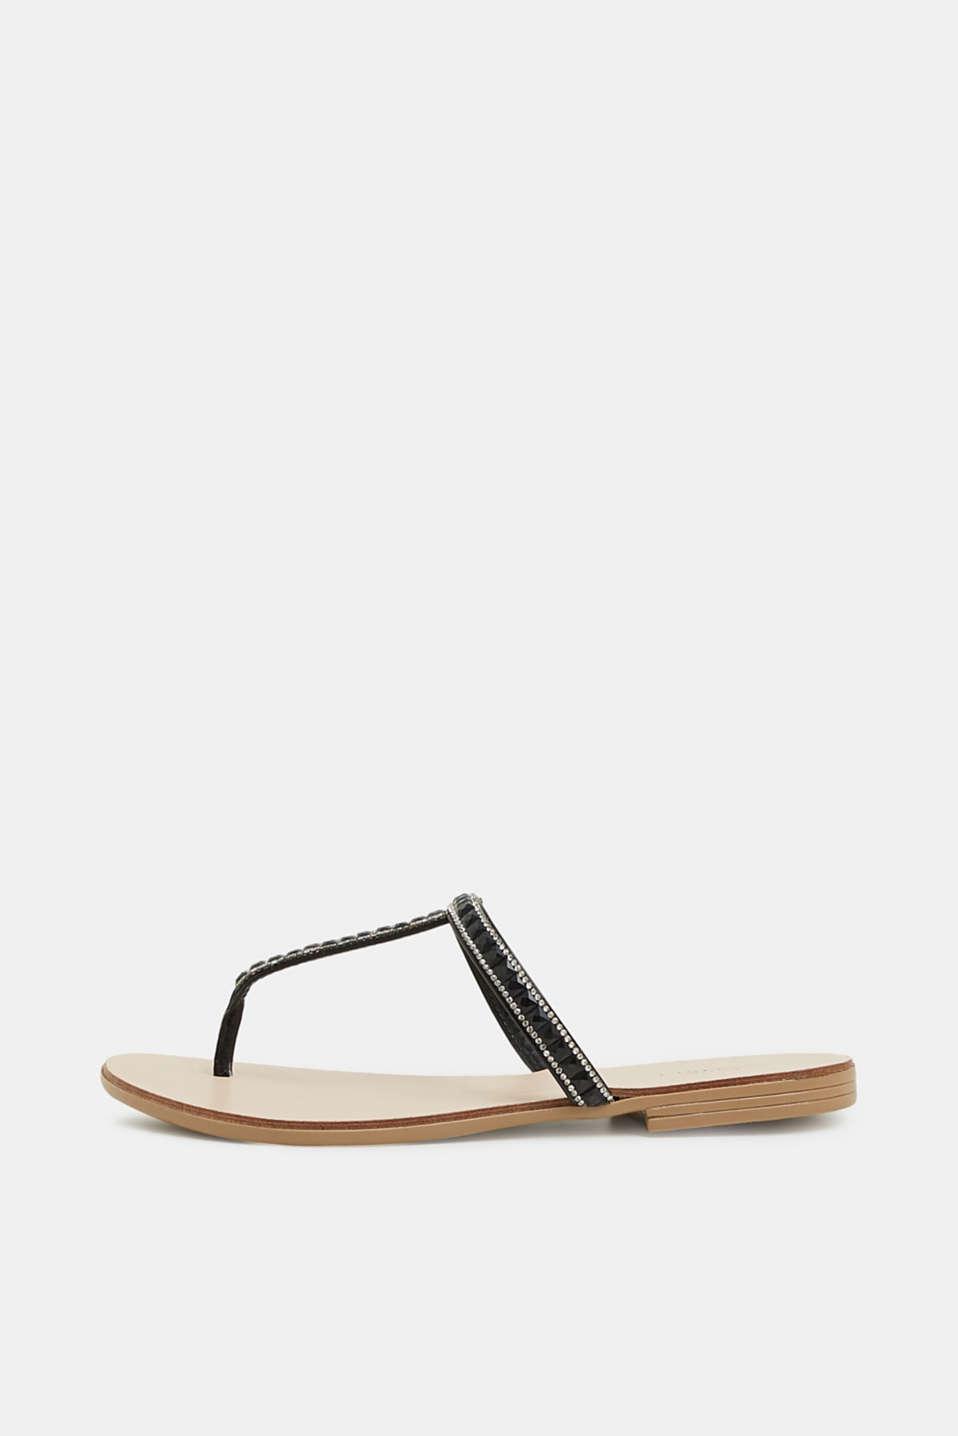 Esprit - Thong sandals with facet-cut stones